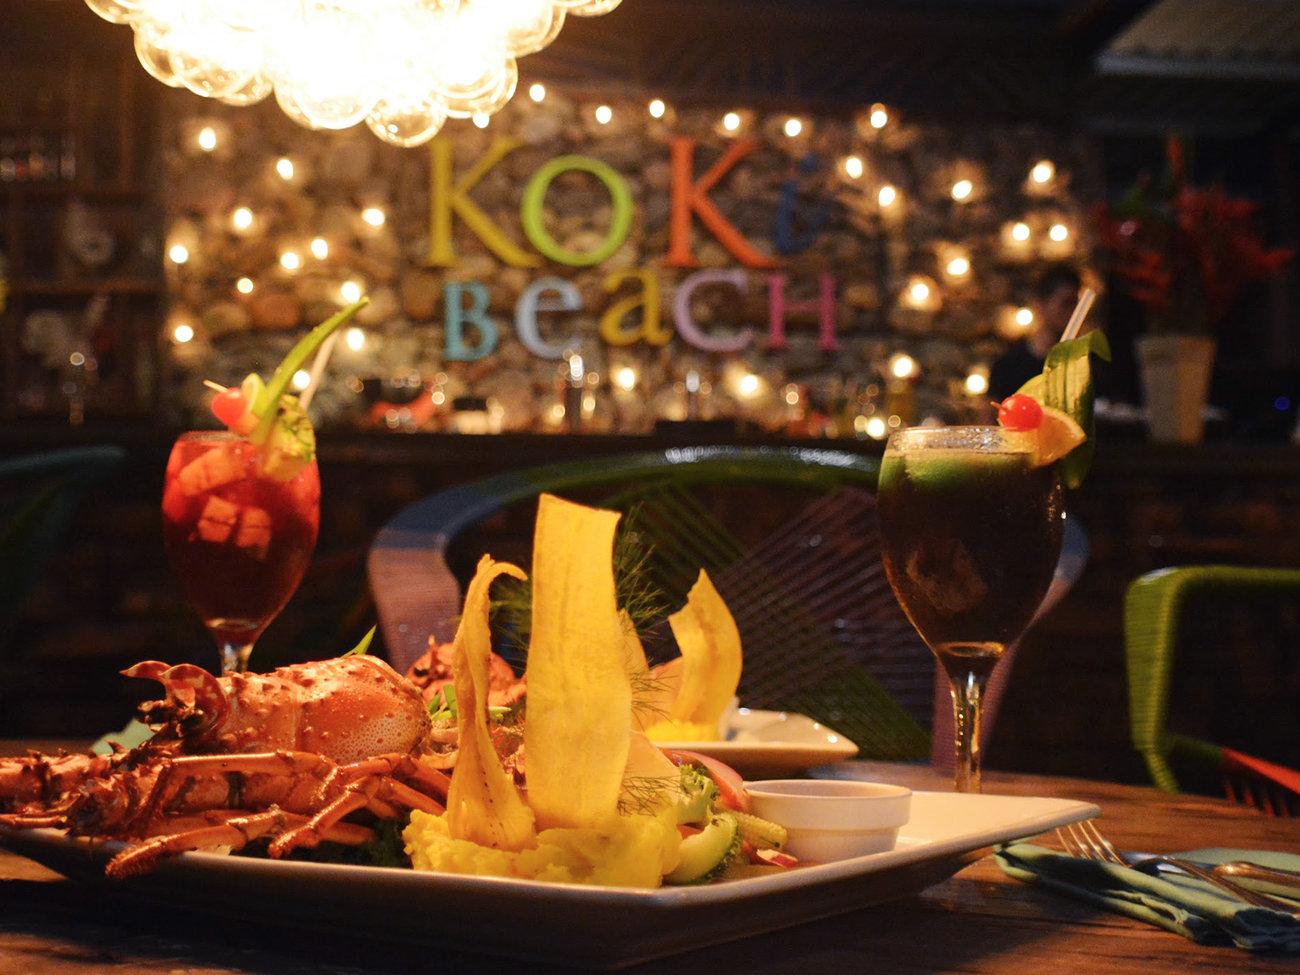 Koki Beach Bar in Costa Rica